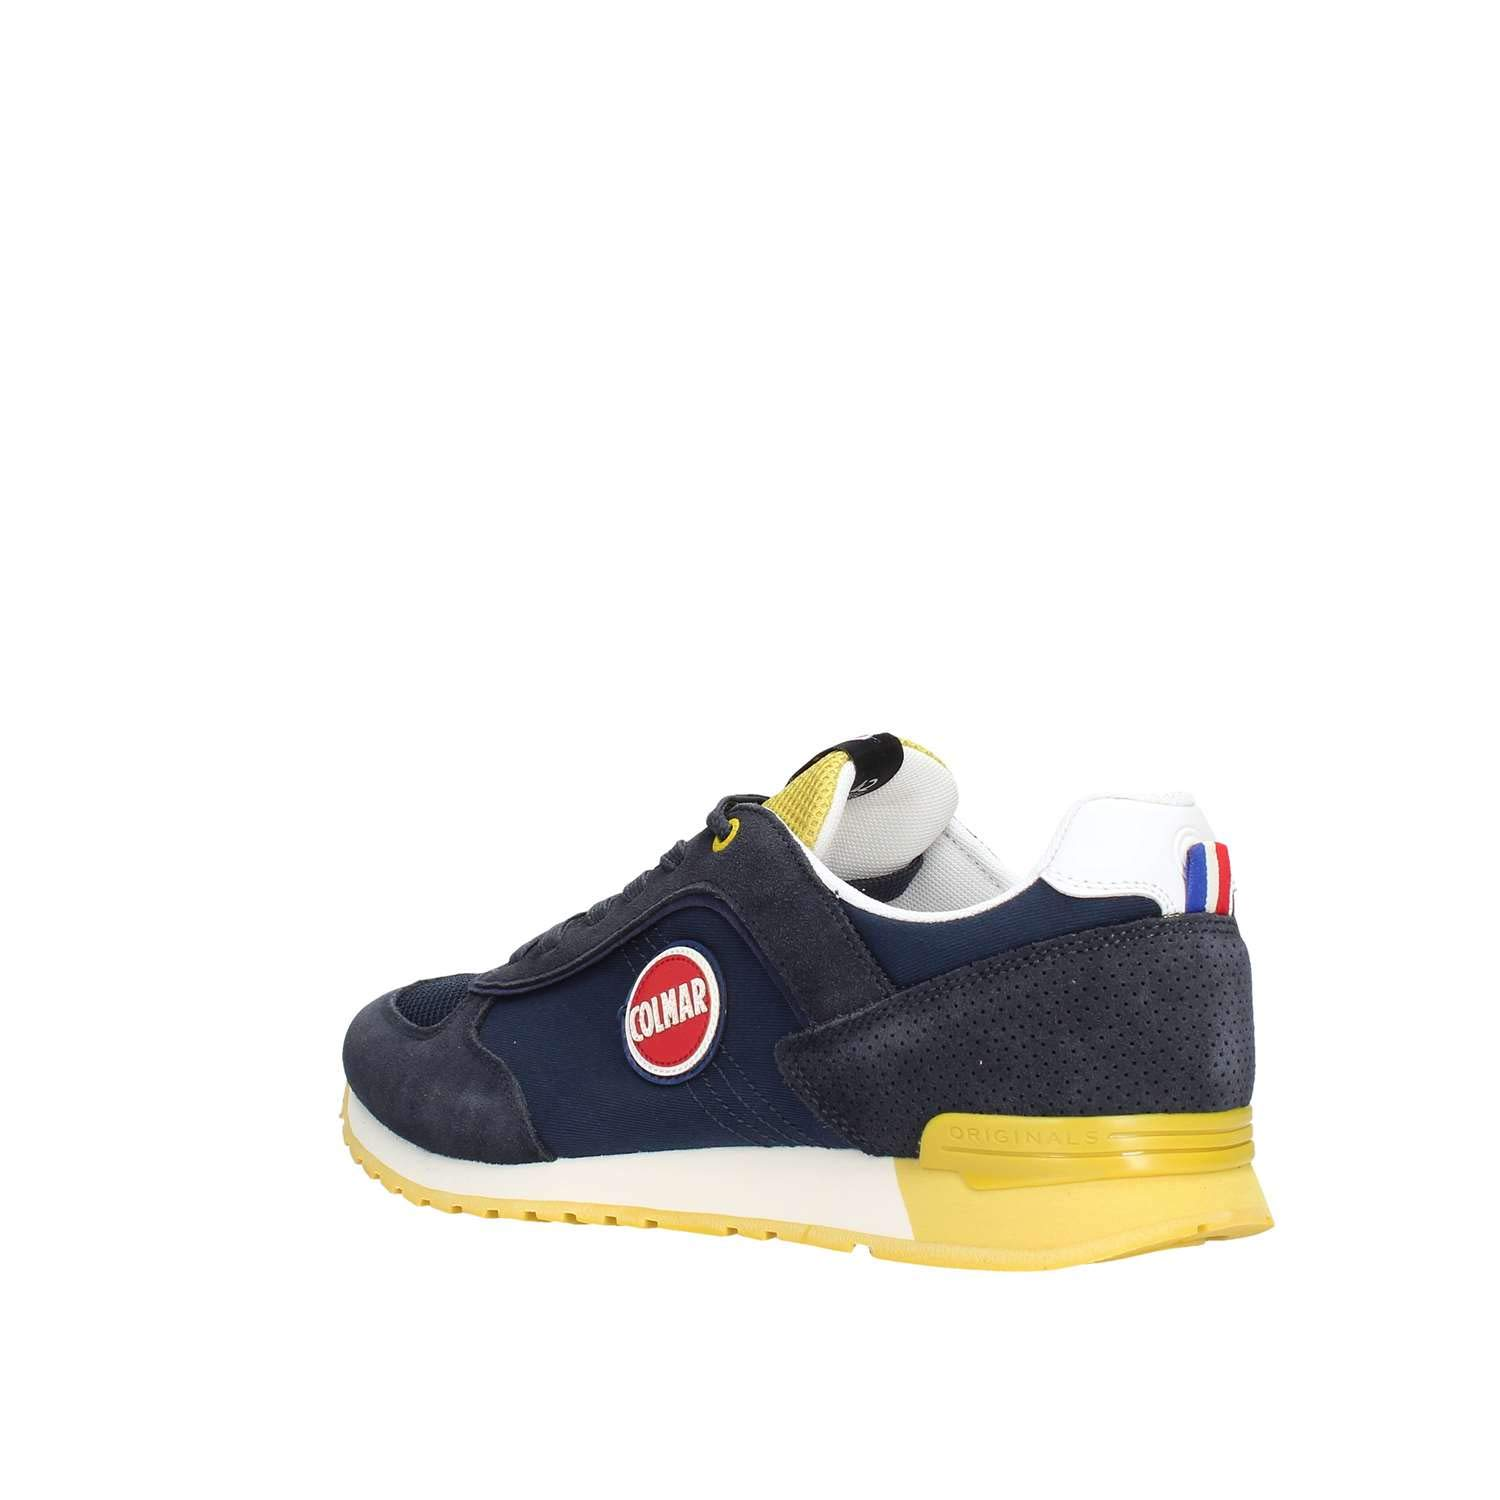 online retailer d4537 086f6 Colmar TRACOL Navy Yellow Blue Yellow Shoes Sneakers Man Laces   Amazon.co.uk  Shoes   Bags